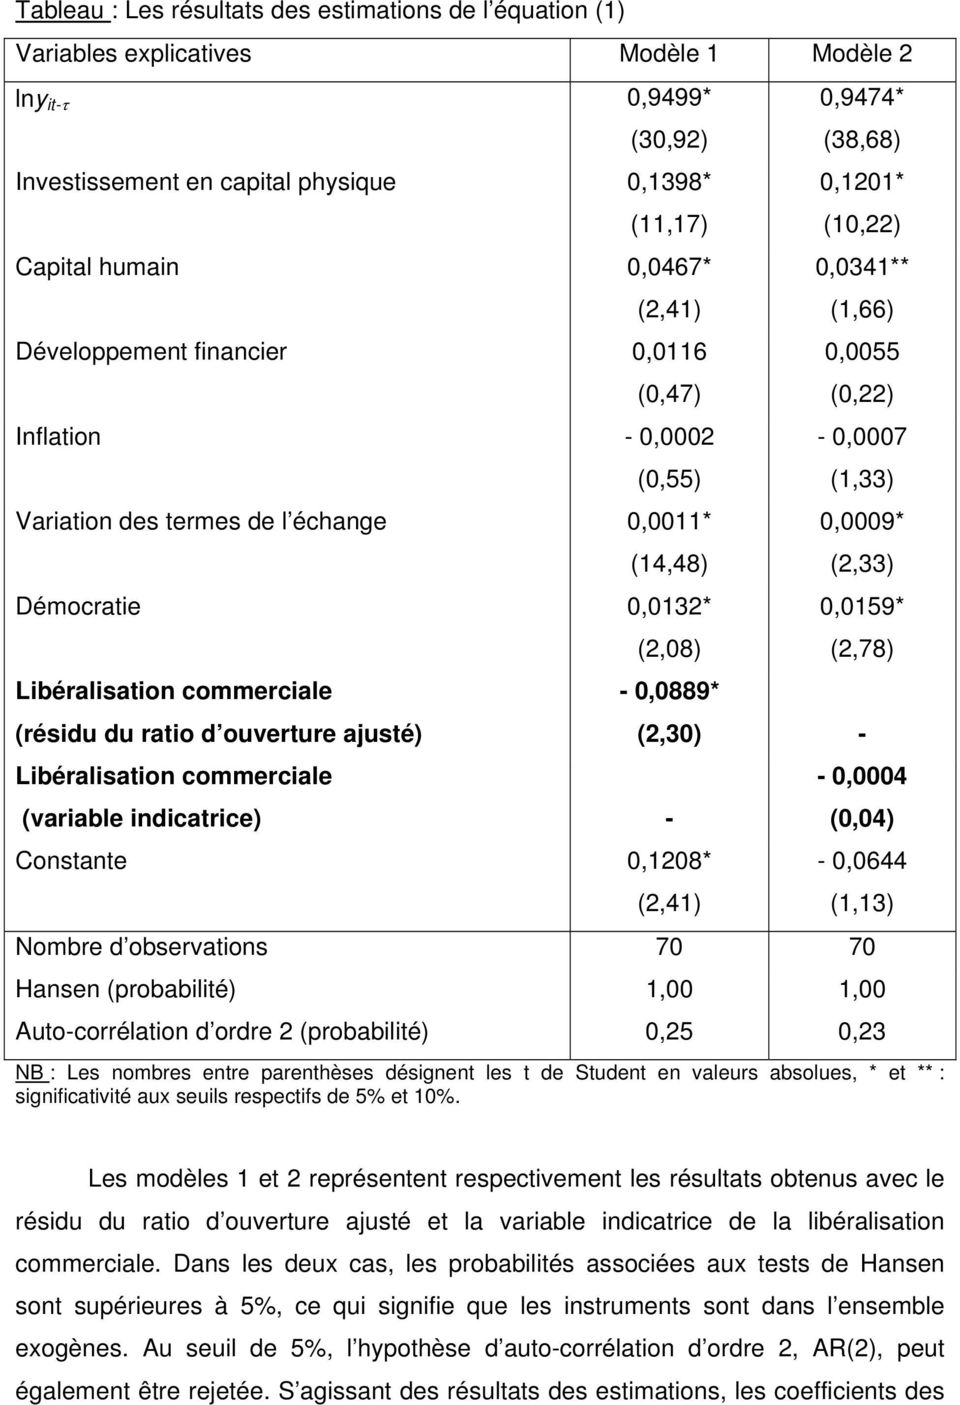 Libéralisation commerciale (2,08) - 0,0889* (variable indicatrice) - Constante 0,1208* 0,9474* (38,68) 0,1201* (10,22) 0,0341** (1,66) 0,0055 (0,22) - 0,0007 (1,33) 0,0009* (2,33) 0,0159* (2,78)